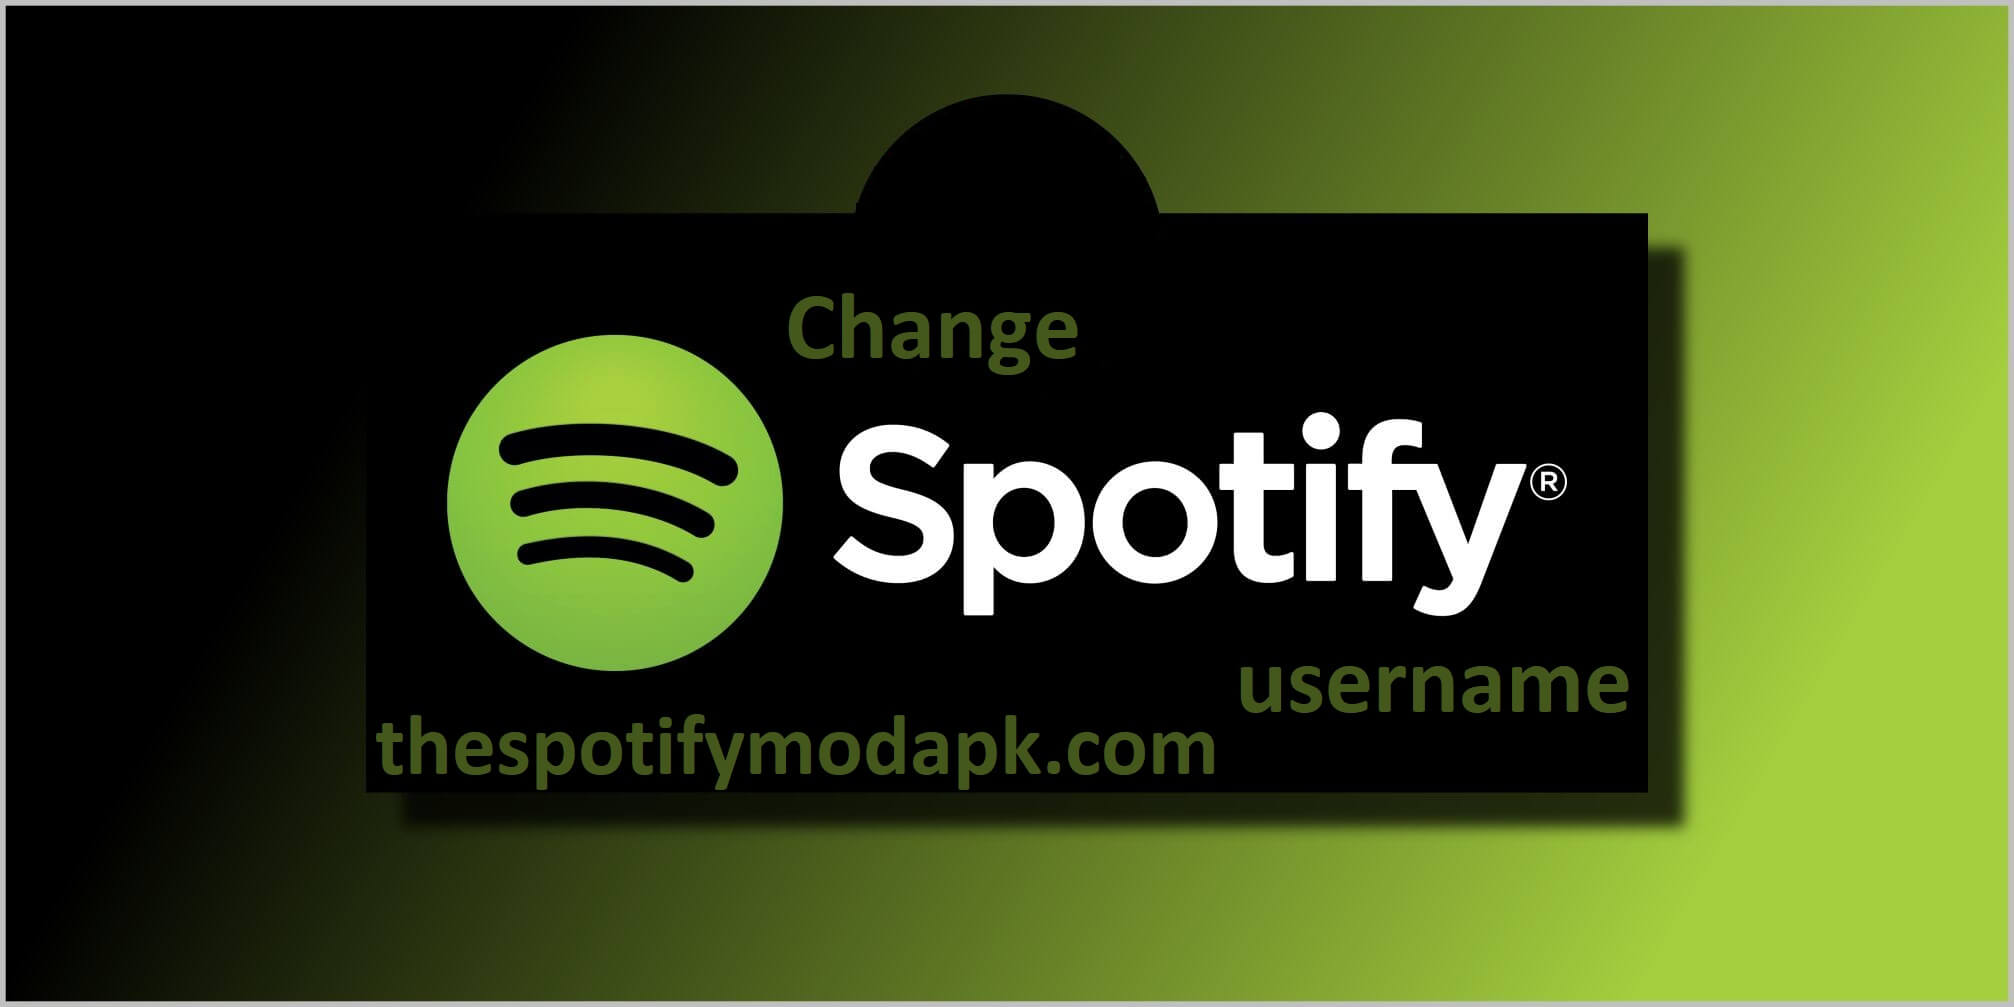 change Spotify username